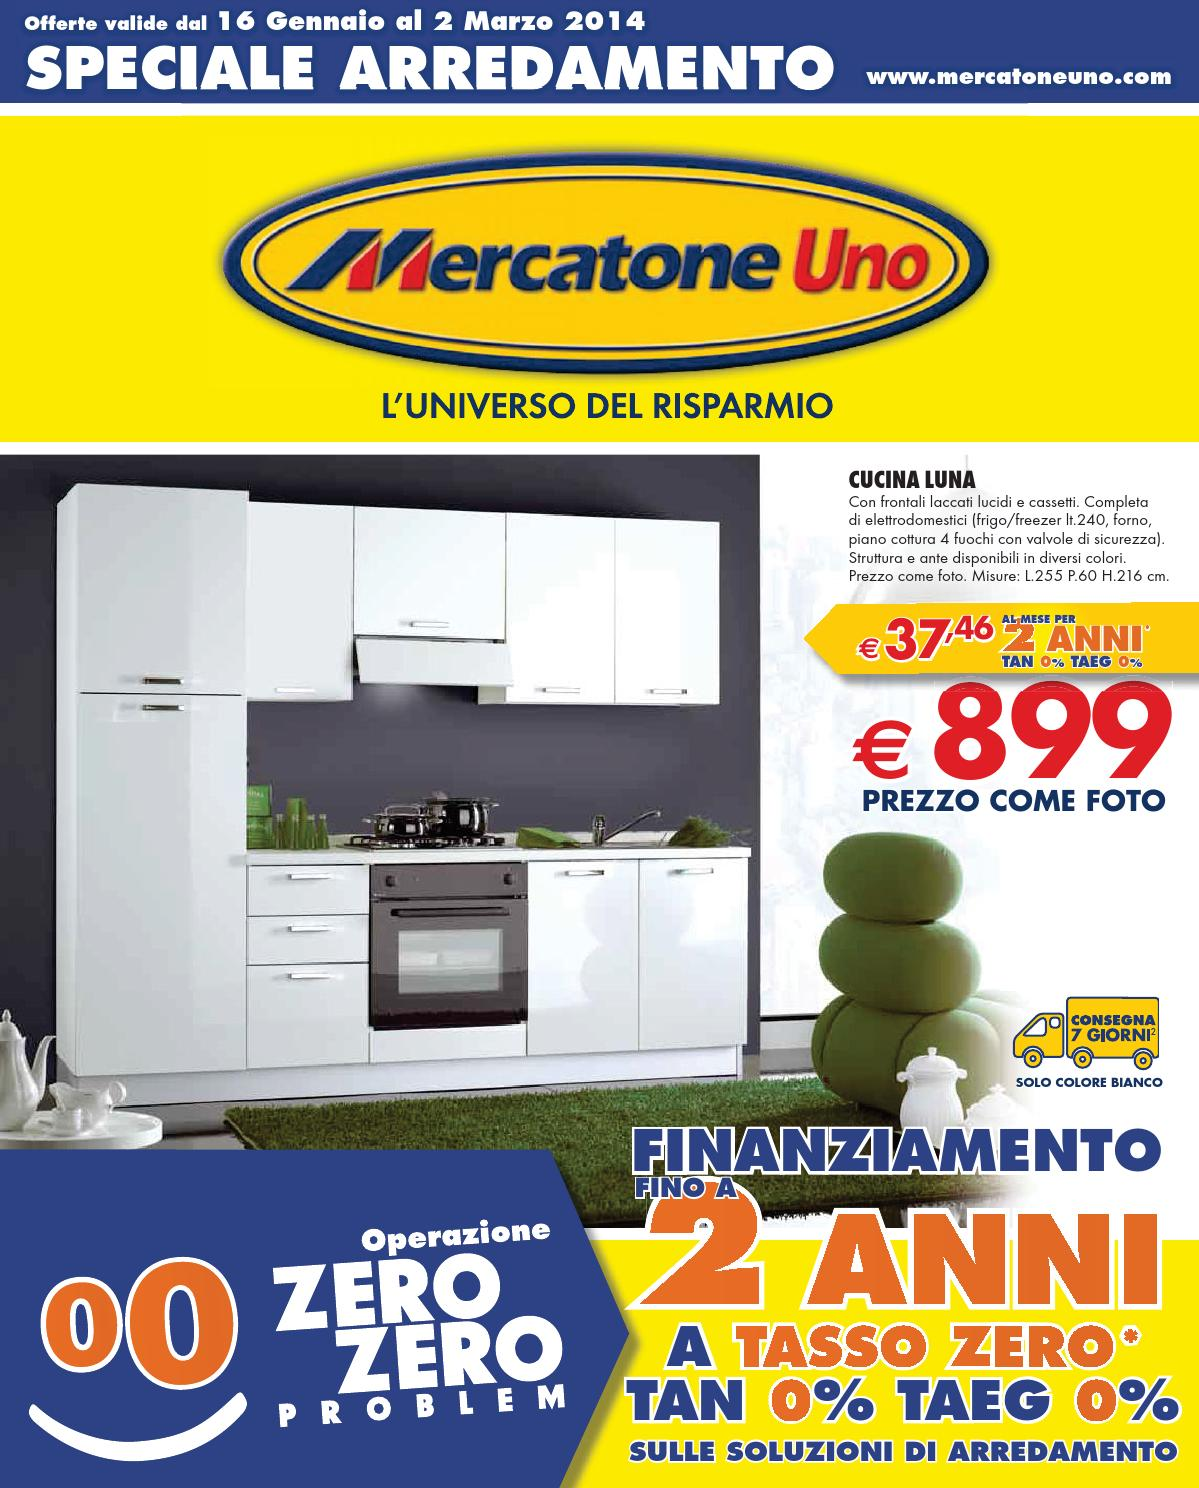 mercatone uno promo2014 by mobilpro issuu